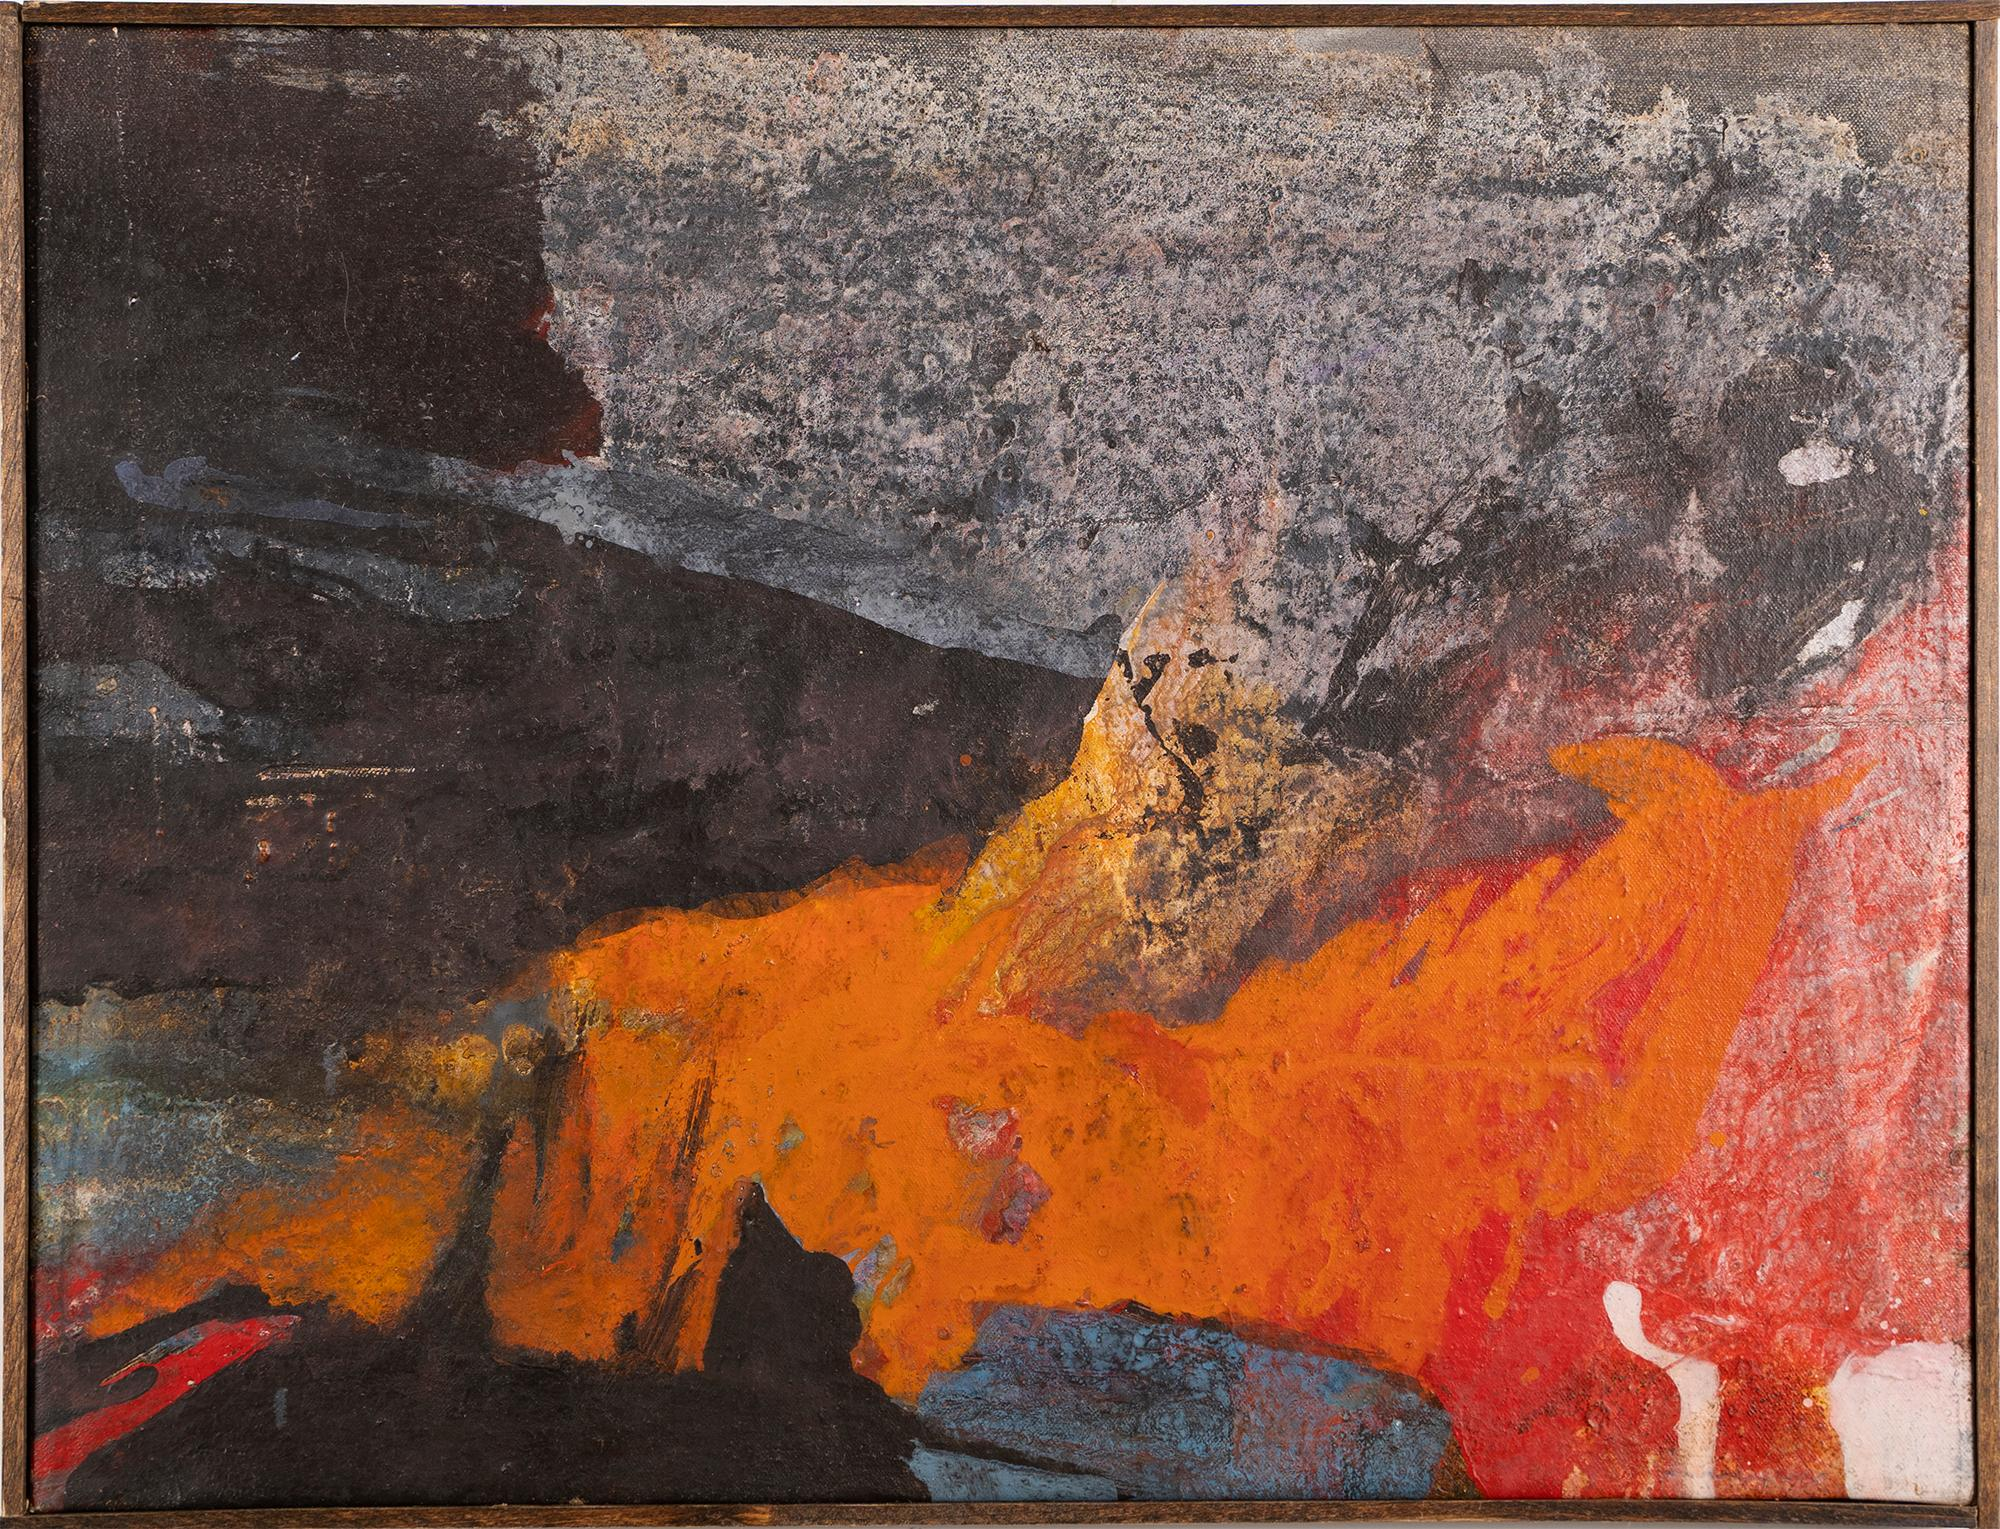 Vintage Mid Century Modern Abstract Expressionist Ethereal Organic Oil Painting